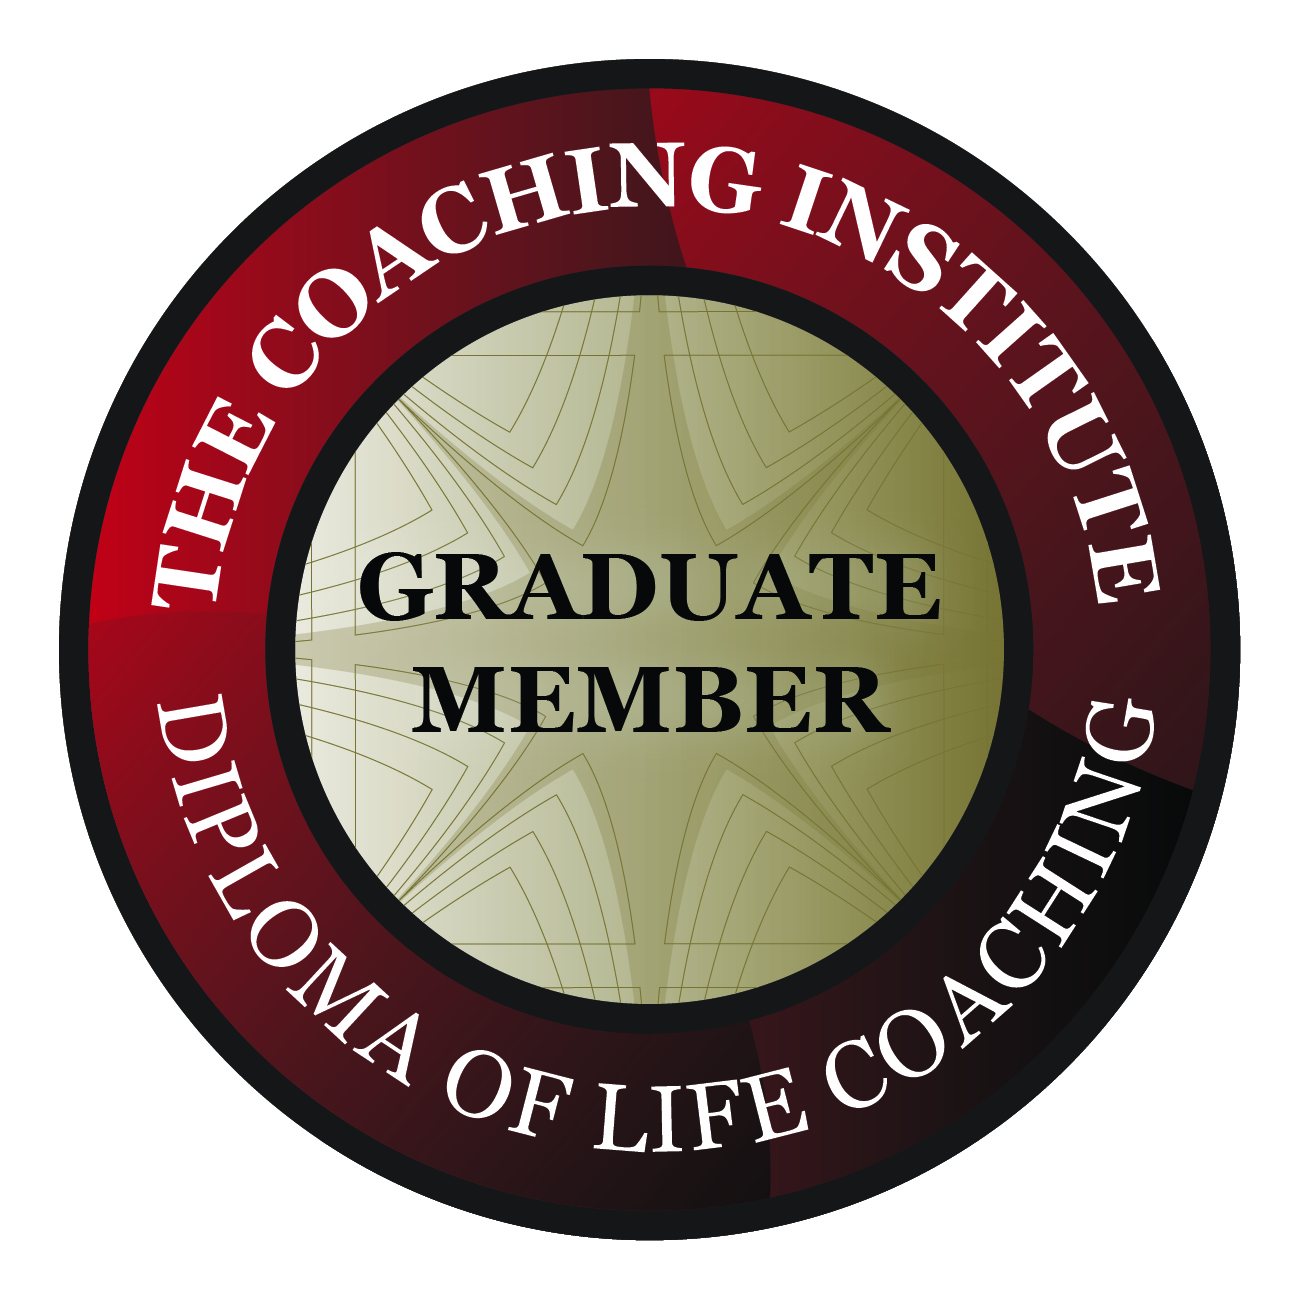 Credentialed Master Practitioner of Coaching - High Resolution